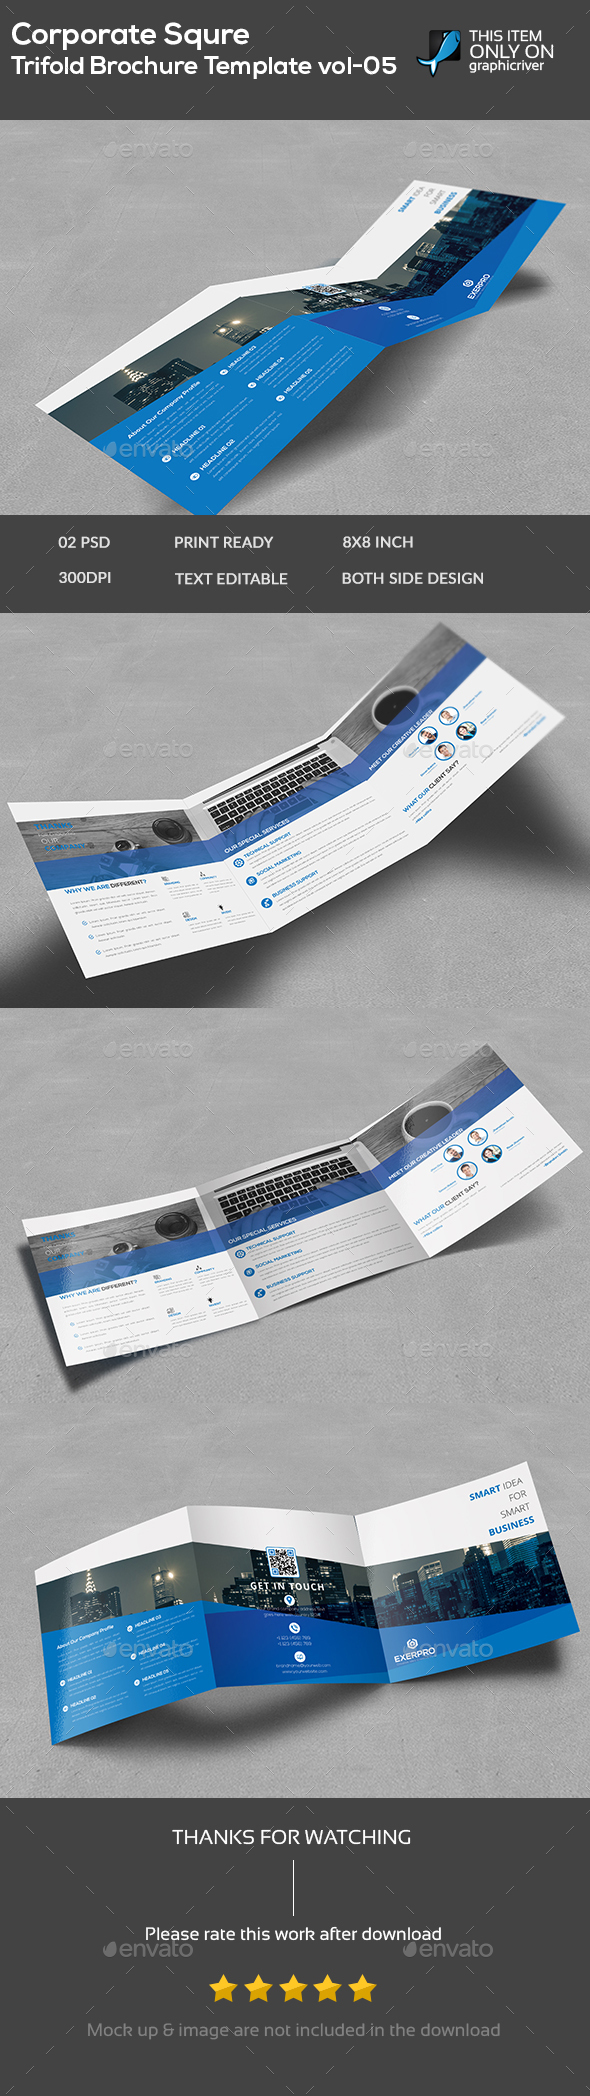 Corporate Square Trifold Brochure Template -05 - Brochures Print Templates